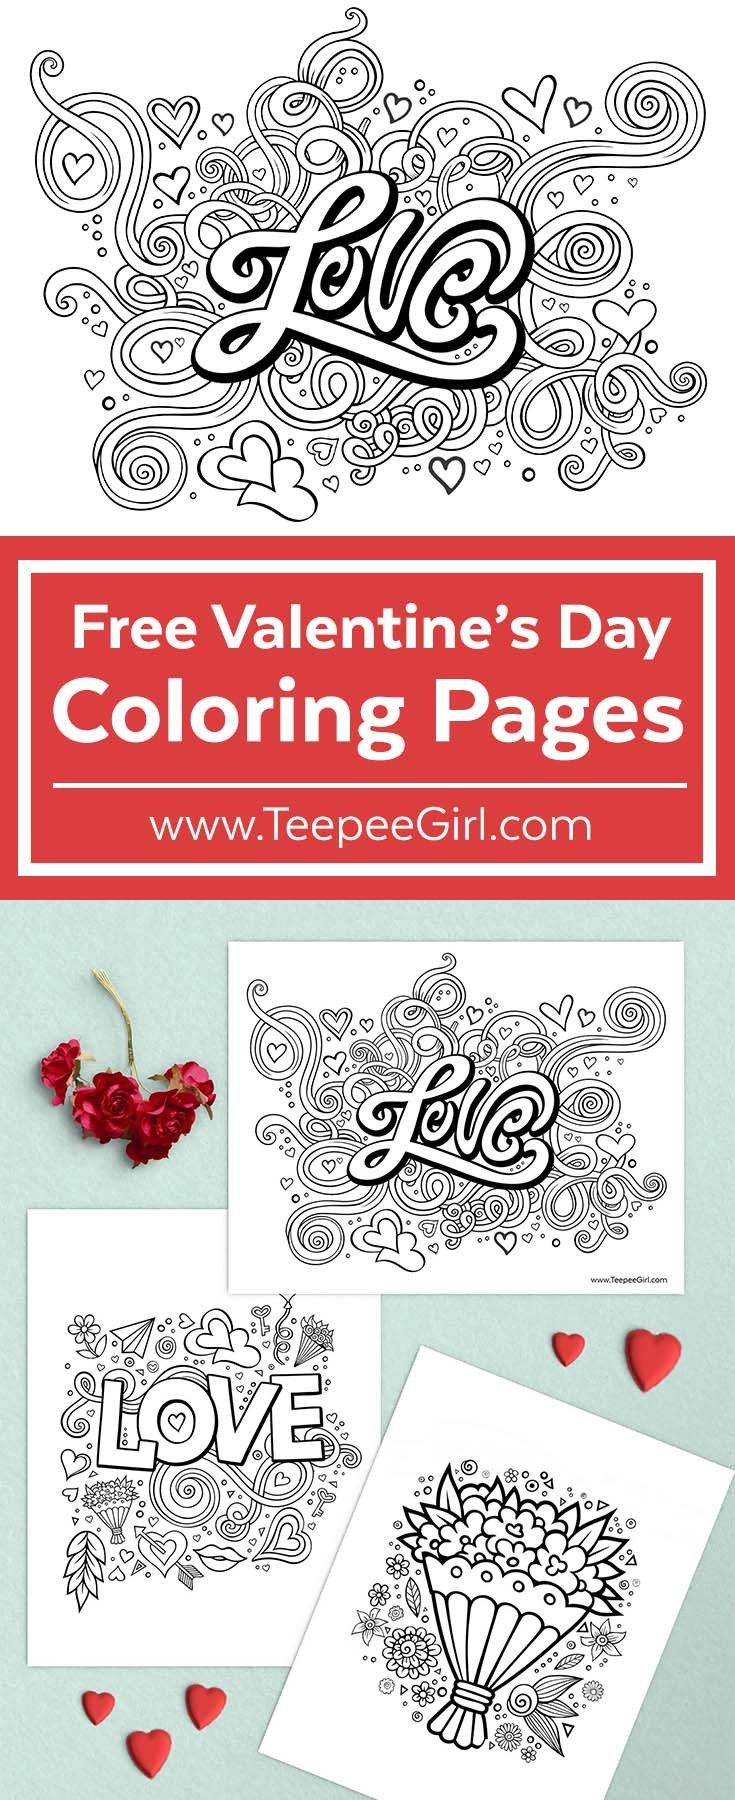 These free Valentines coloring pages are perfect for class & church parties, play-dates, and any other time you need to keep kids busy and happy! There are three pages so there is one for every coloring level. Click here or get yours at www.TeepeeGirl.com.